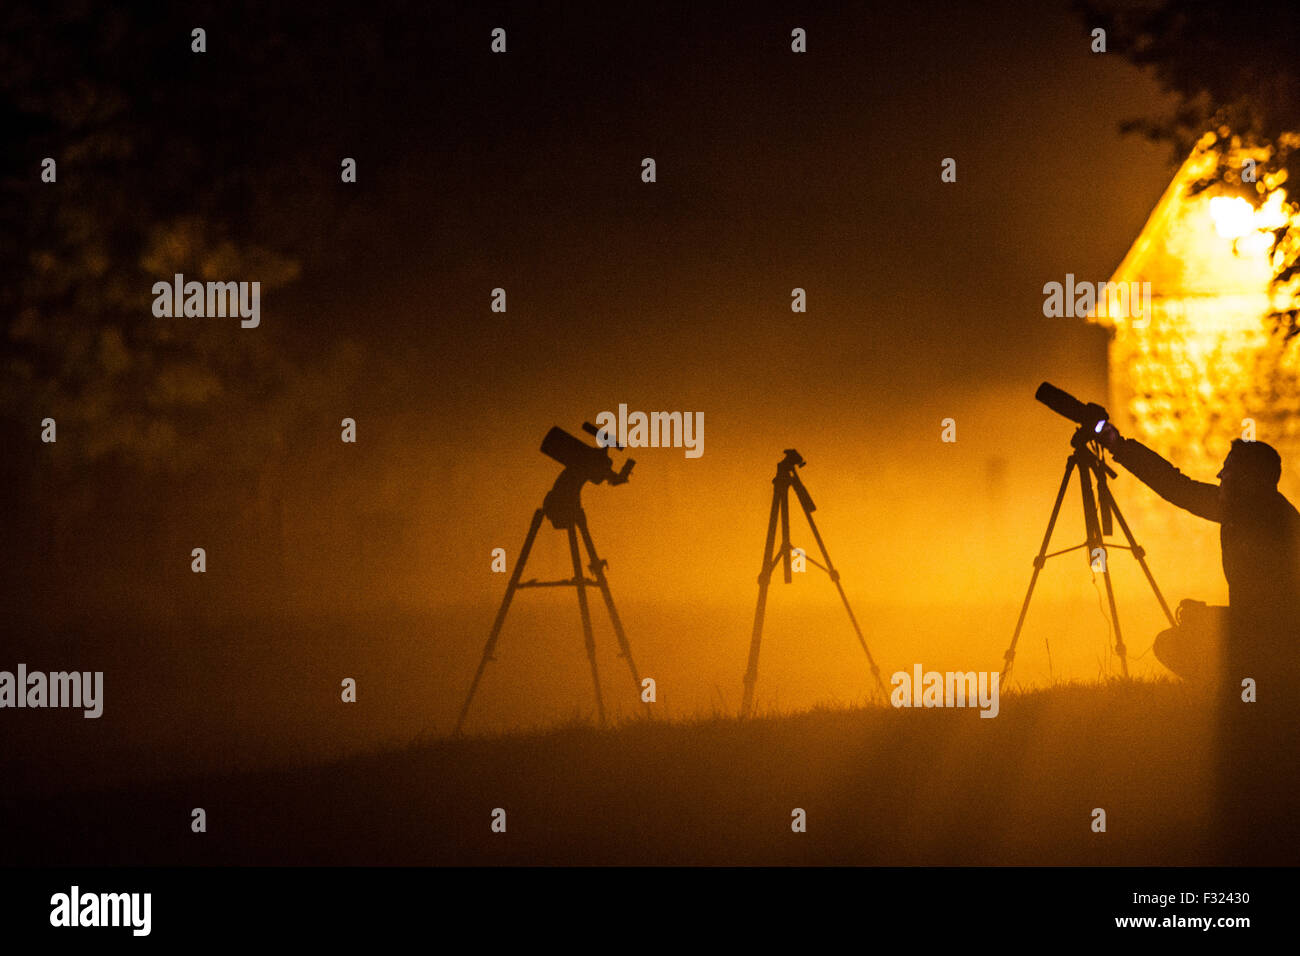 Silhouettes of photographers and tripods waiting to photograph the Blood Moon over Avebury. - Stock Image